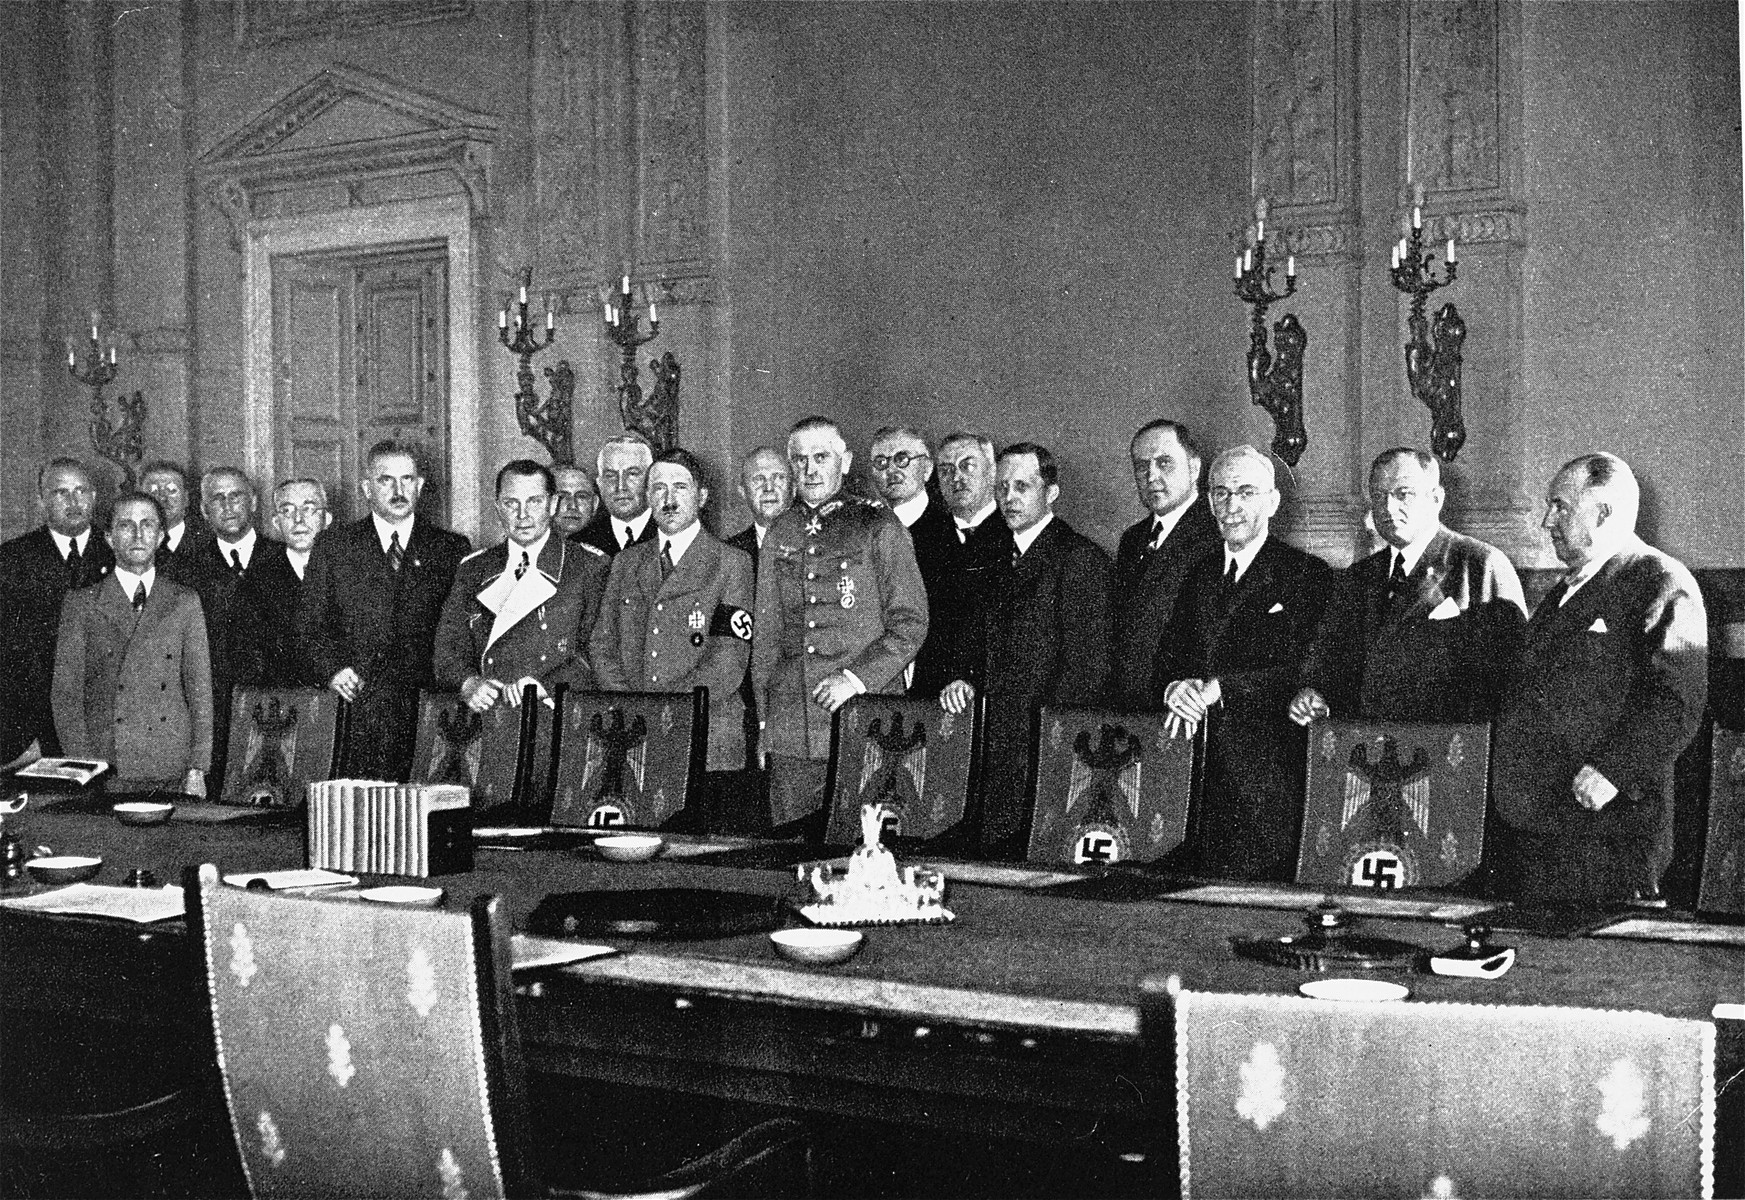 Adolf Hitler poses with members of his first cabinet in a conference room of the chancellery on the occasion of the announcement of new national defense legislation.